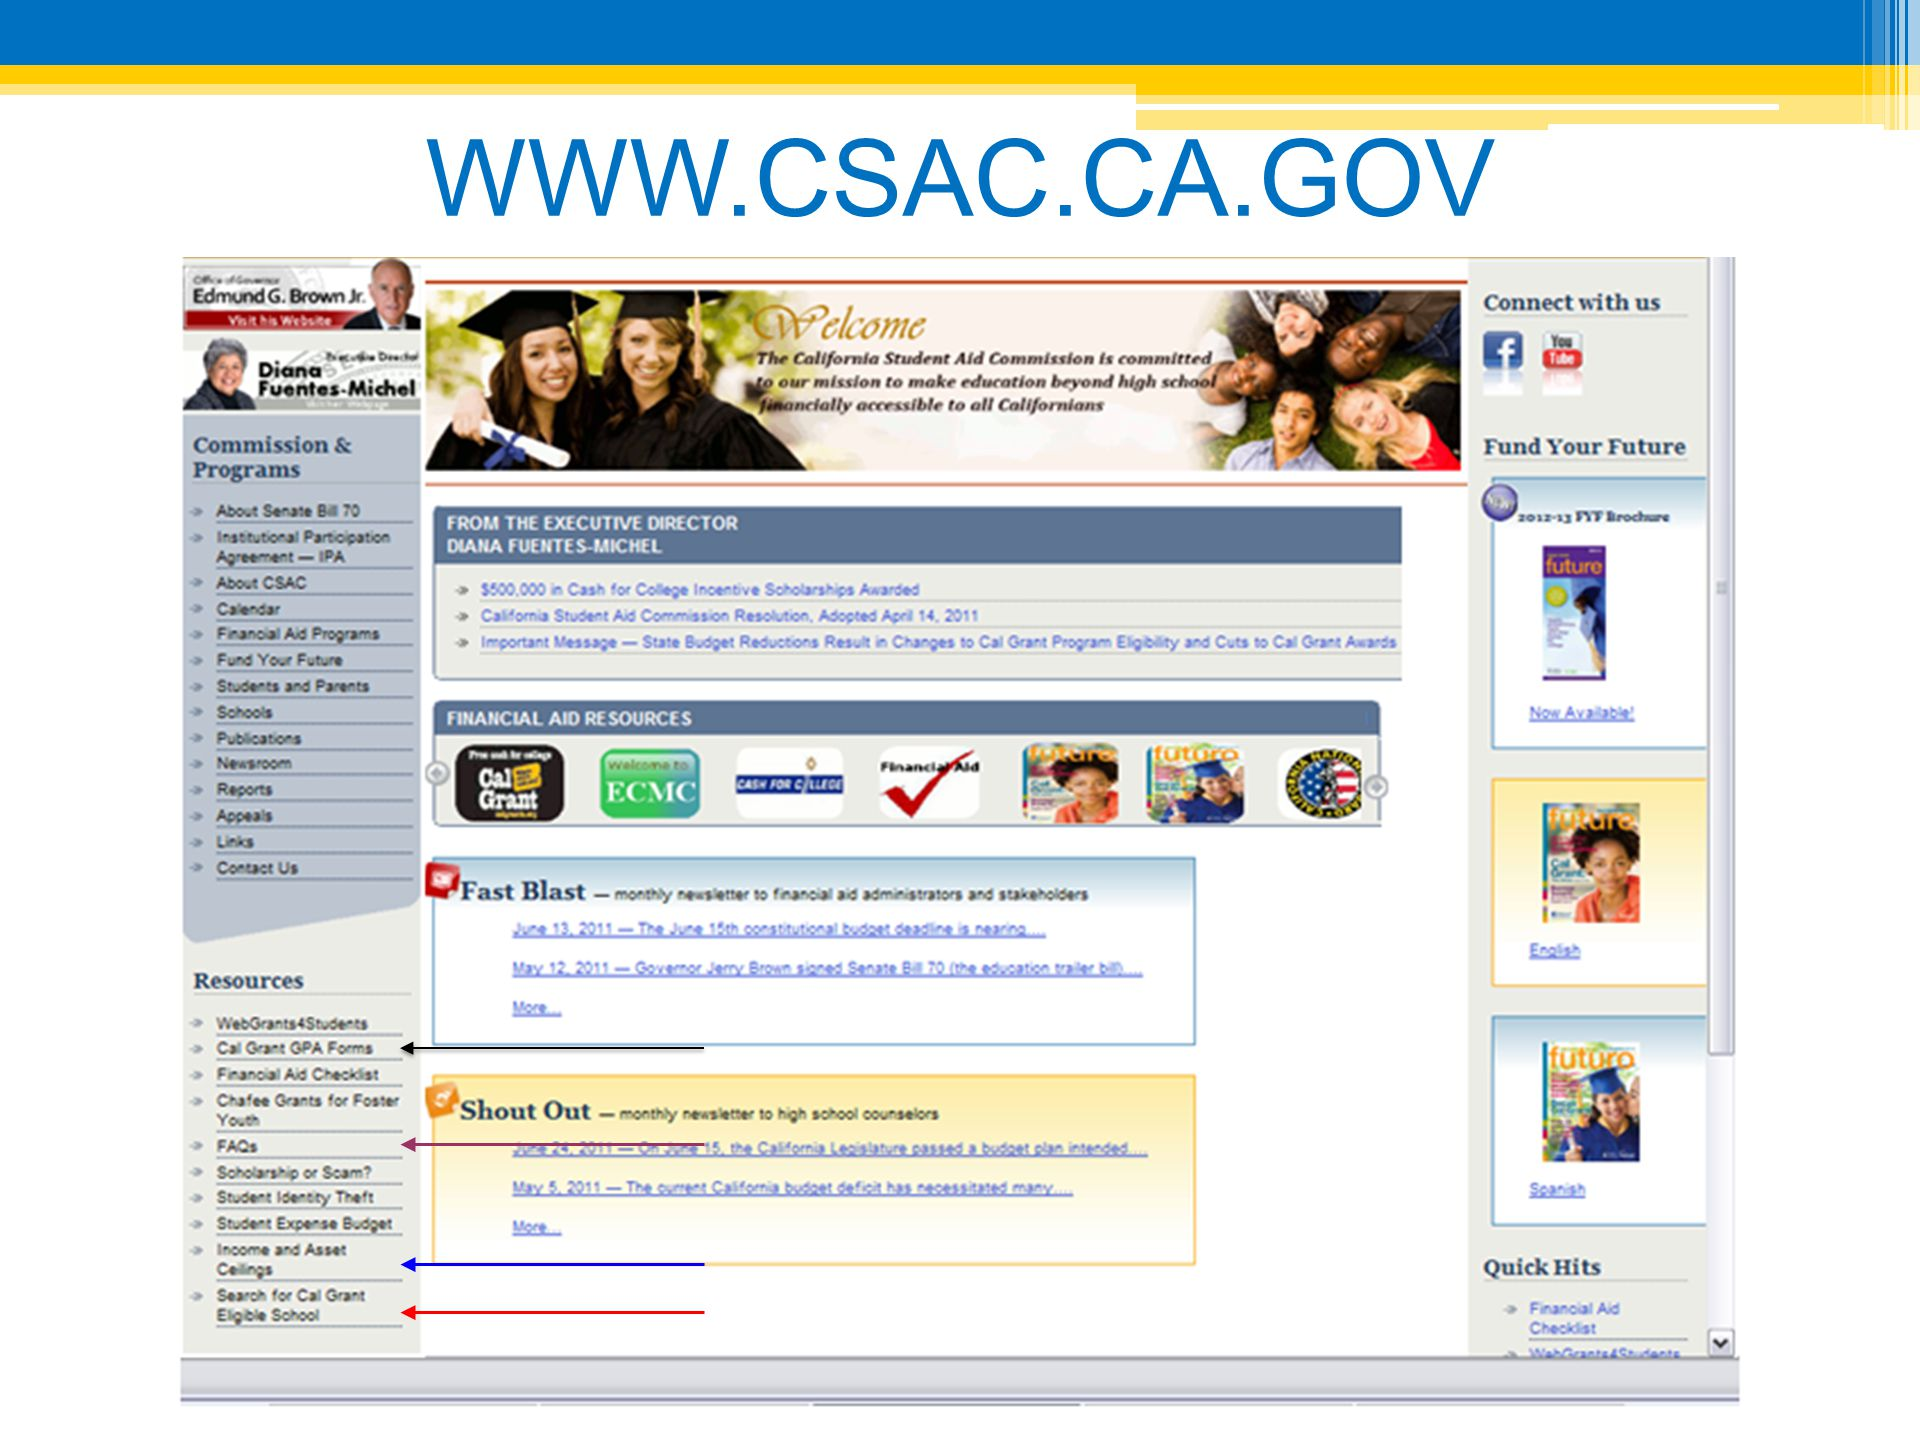 WWW.CSAC.CA.GOV On the CSAC home page you can find: